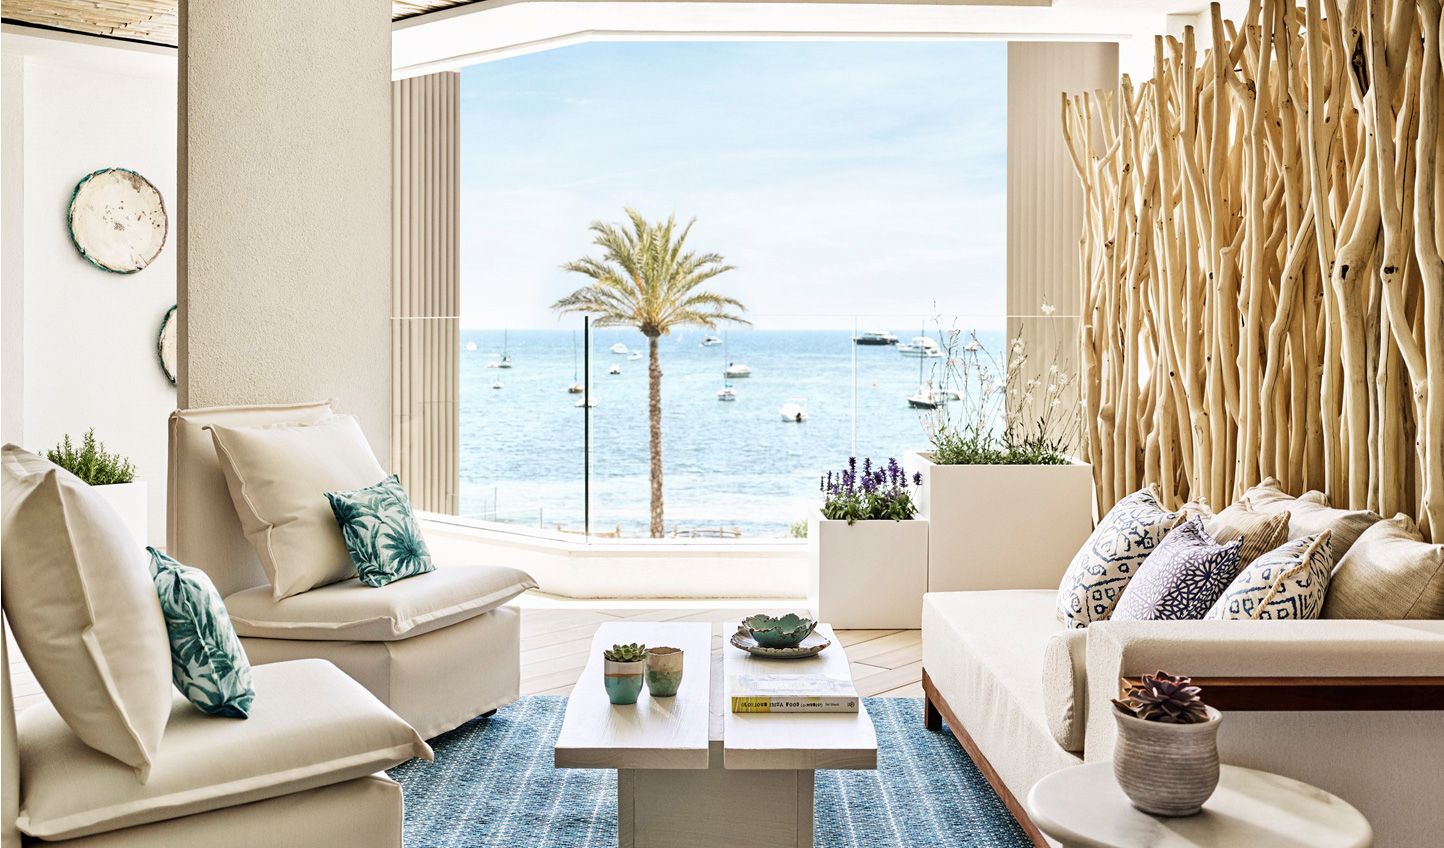 Look out over azure waters from the comfort of your suite